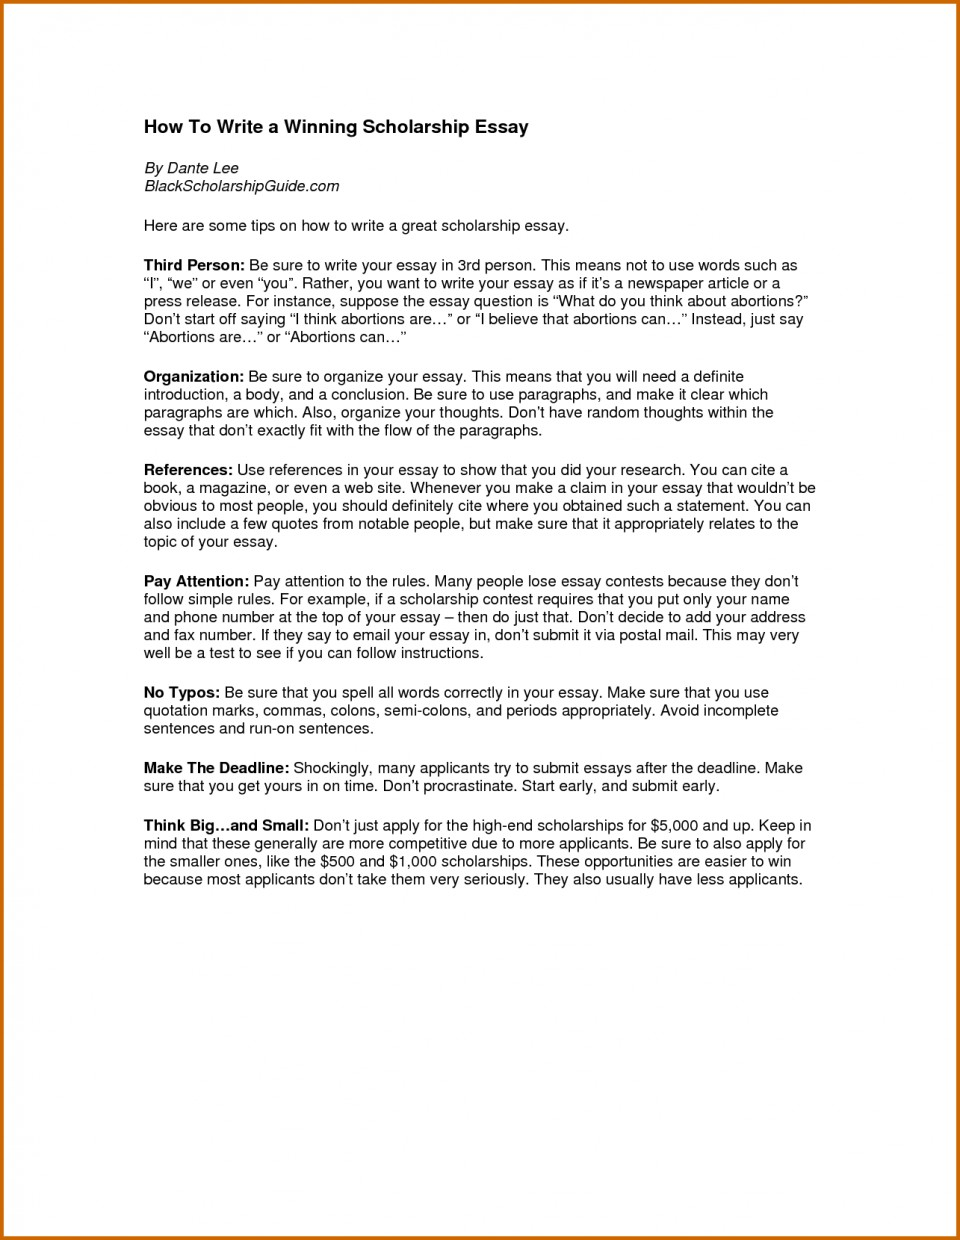 021 Essay Example How To Write Scholarship Scholarships For Juniors In High School Stunning No 960